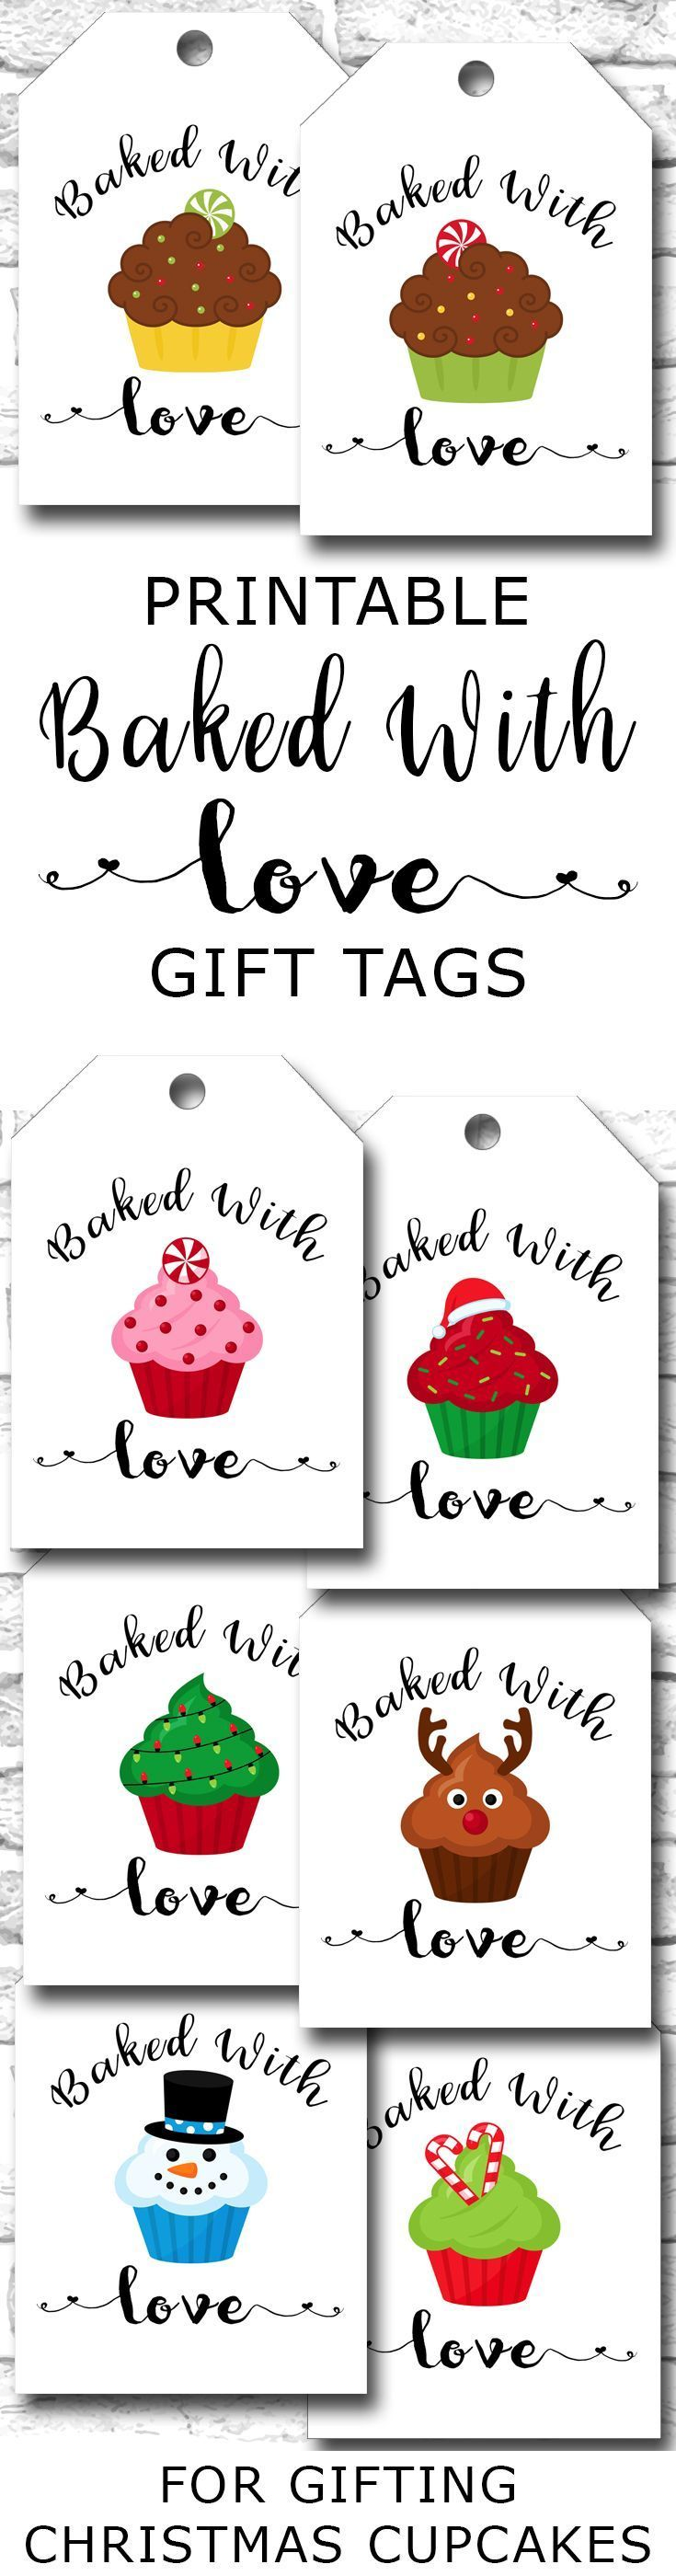 best ideas about christmas list printable printable baked love gift tags homemade food gift tags christmas gift tags cupcake favor tags baking gift tags instant